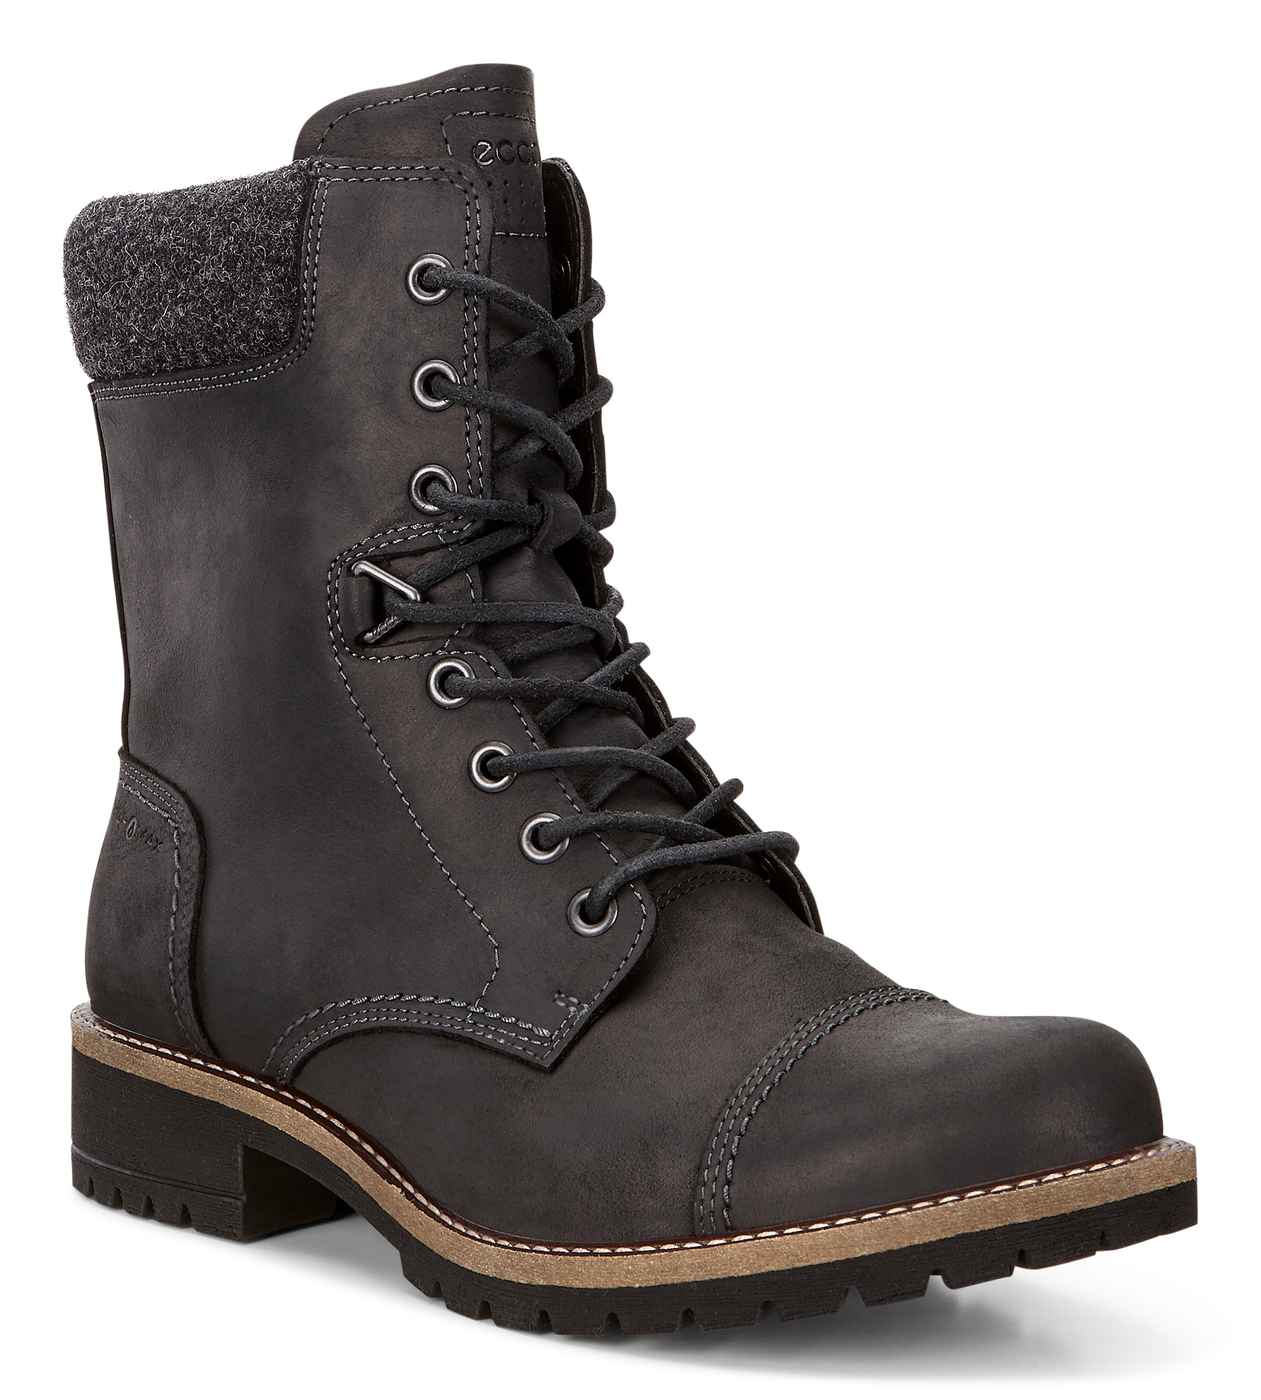 ECCO ELAINE Work Boot HM